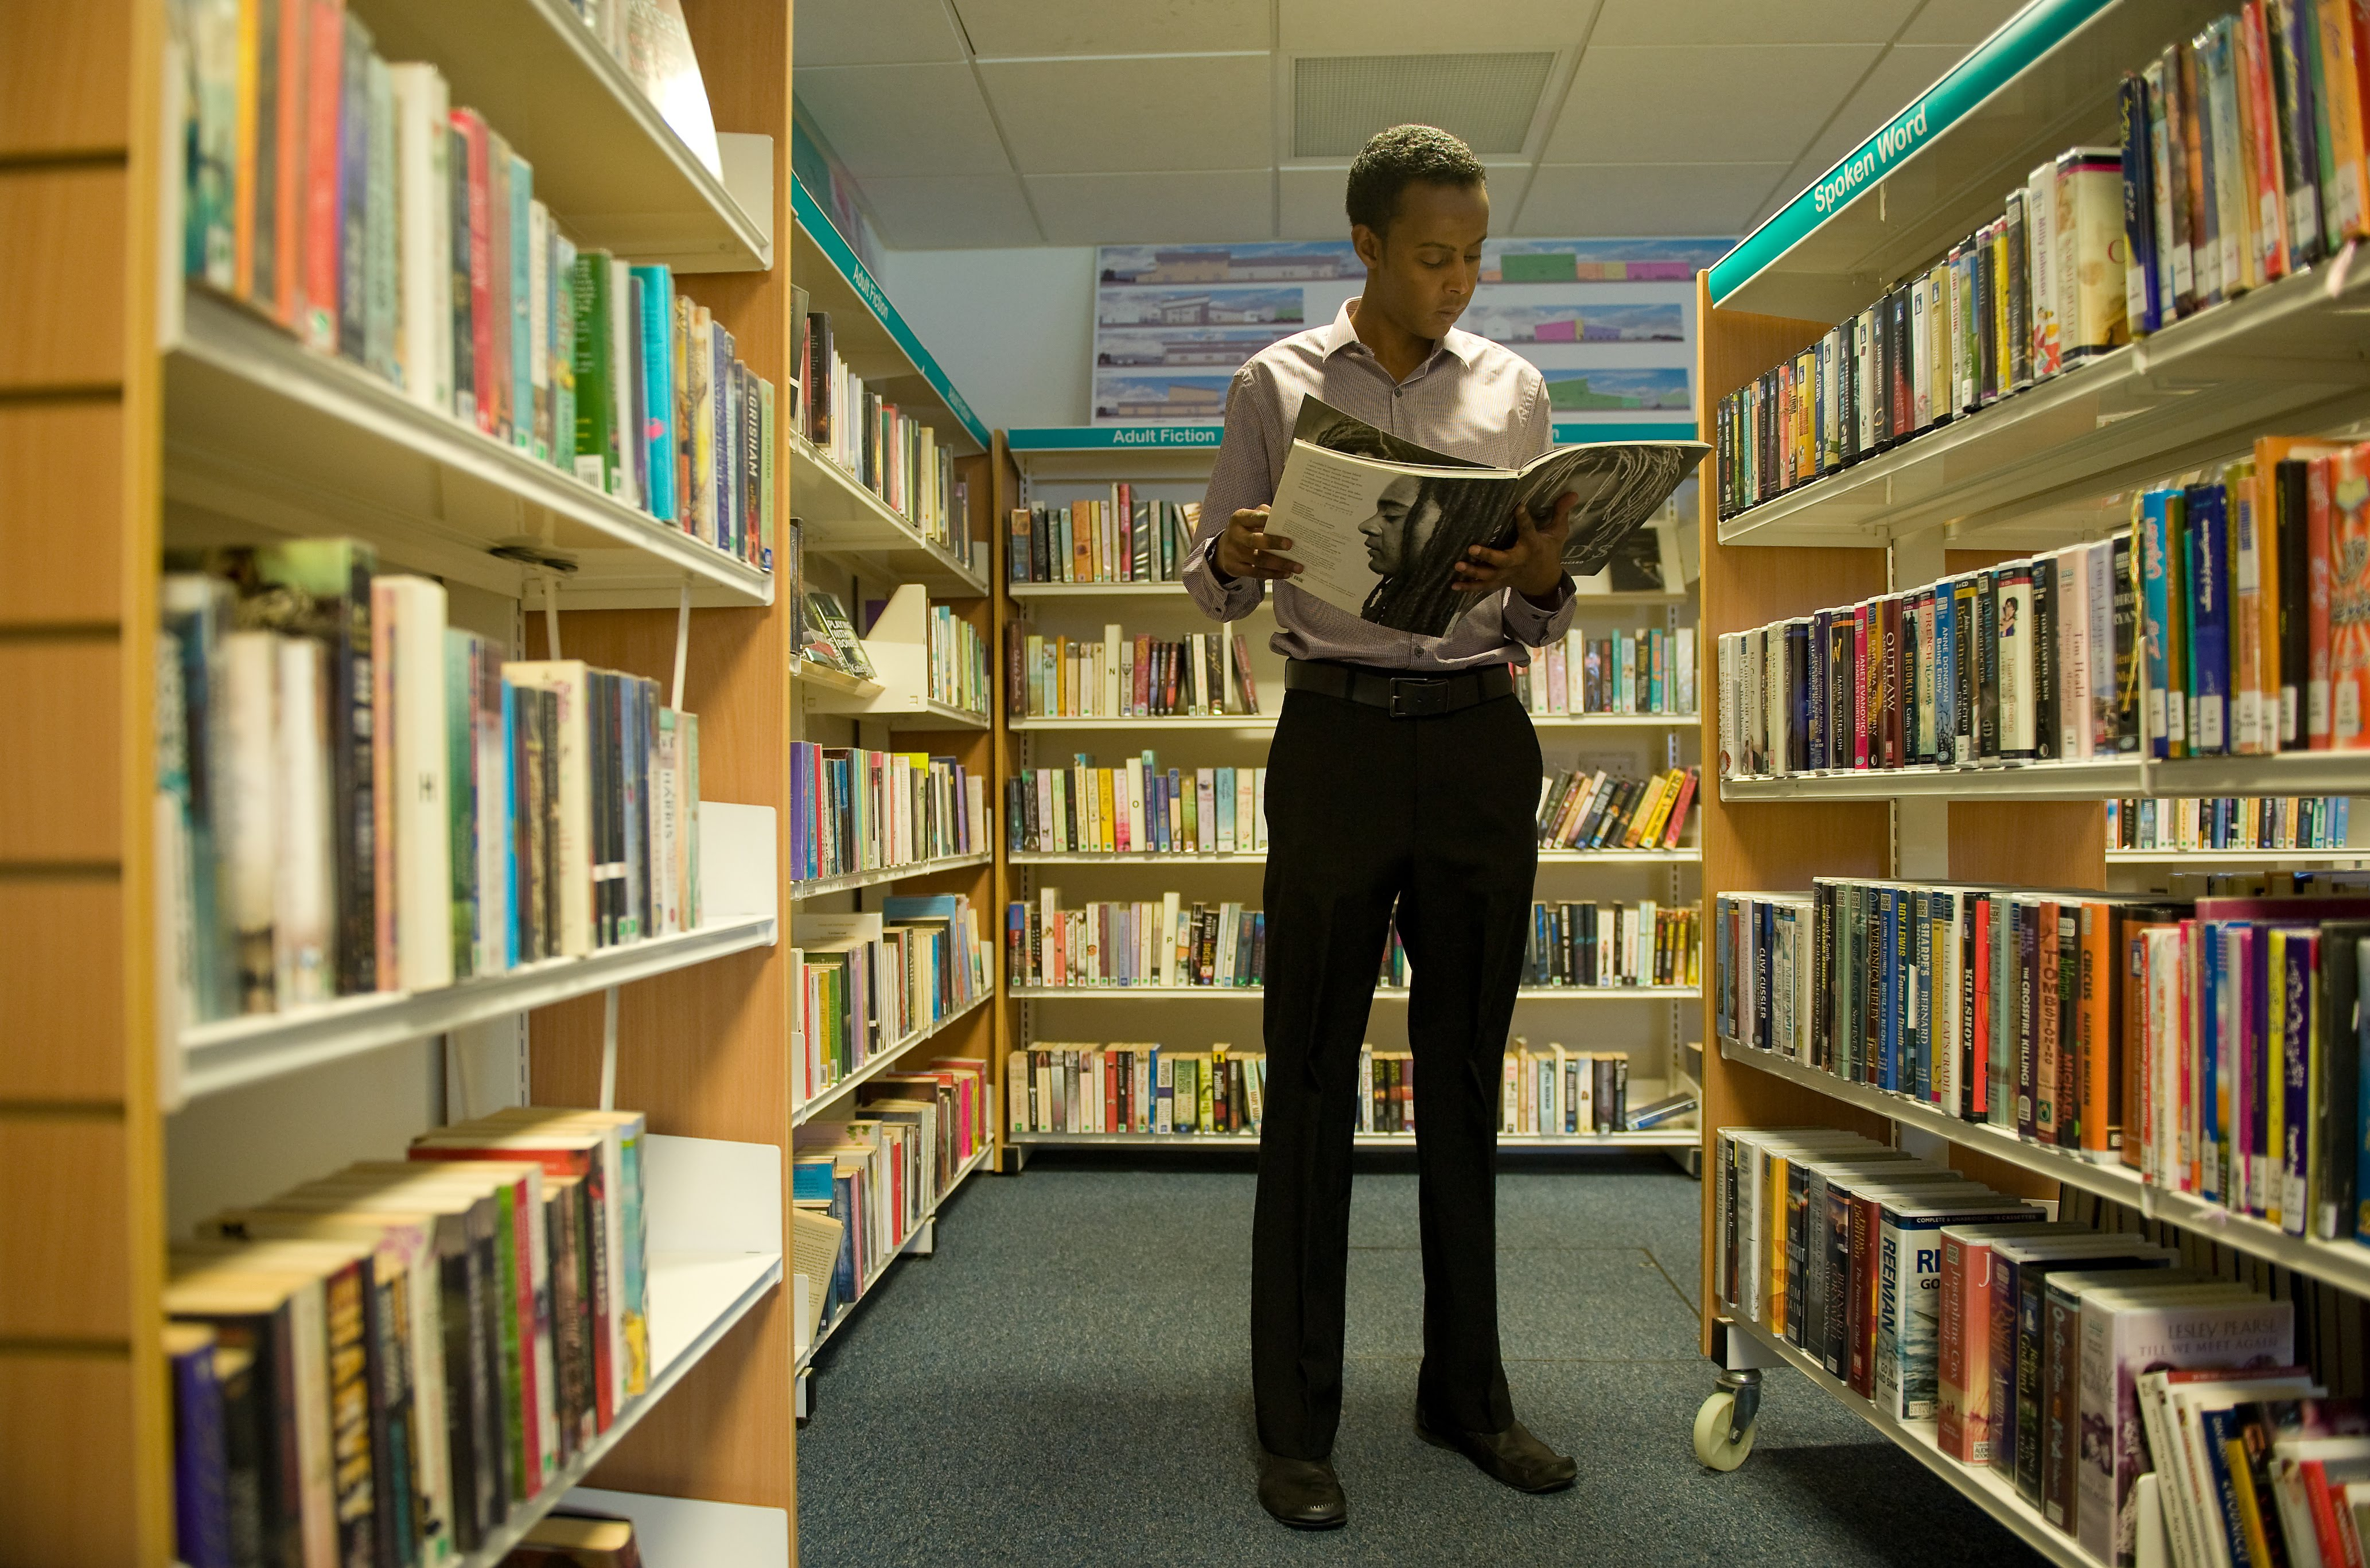 http://libraries.communityknowledgehub.org.uk/content/community-managed-libraries